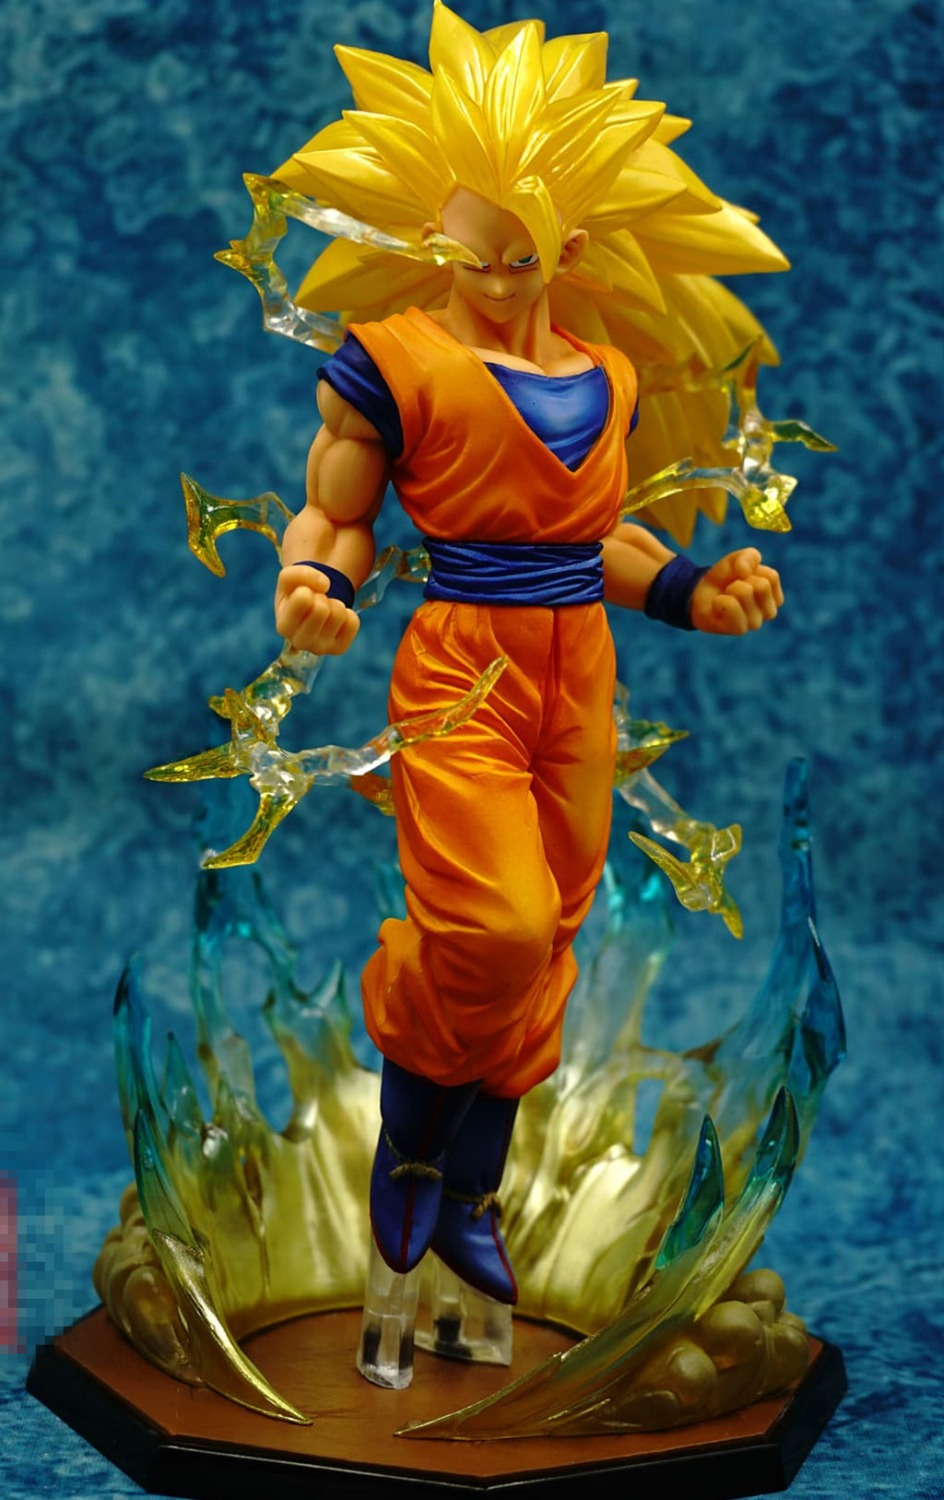 7'' 18CM Anime Dragon Ball Z Action Figure Goku Super Saiyan 3 Son Goku PVC Dragon Ball Z Action Figures Collectible Toy anime dragon ball z toy figure goku figures son goku pvc action figure chidren favorite gifts 15cm approx retail shipping